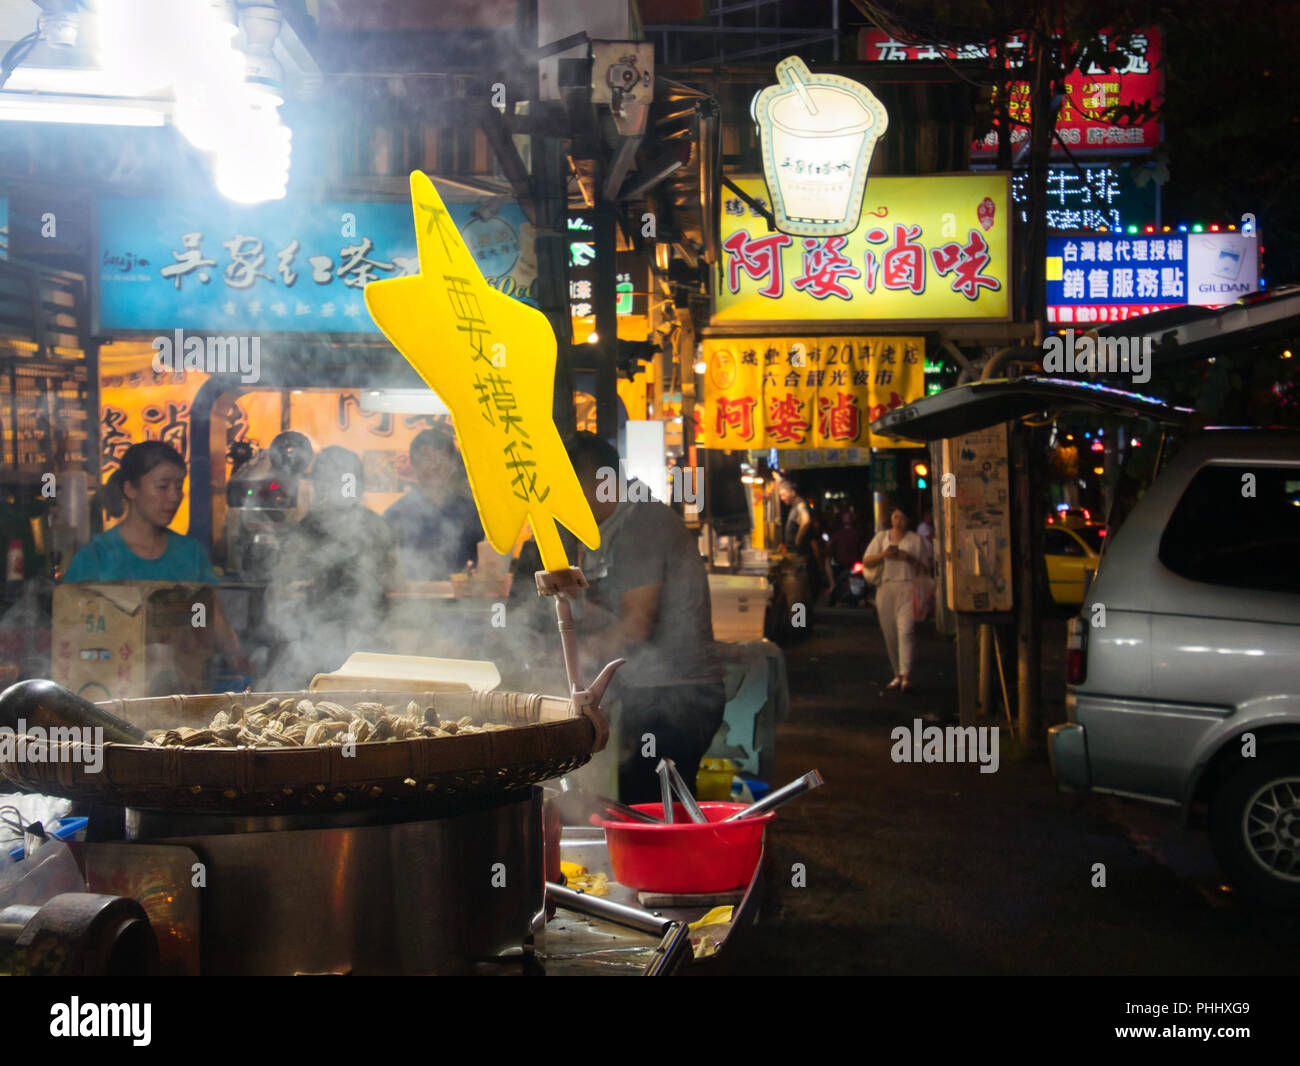 Peanuts being roasted in steaming big pan at taiwanese night market RuiFeng in Kaohsiung, Taiwan - Stock Image